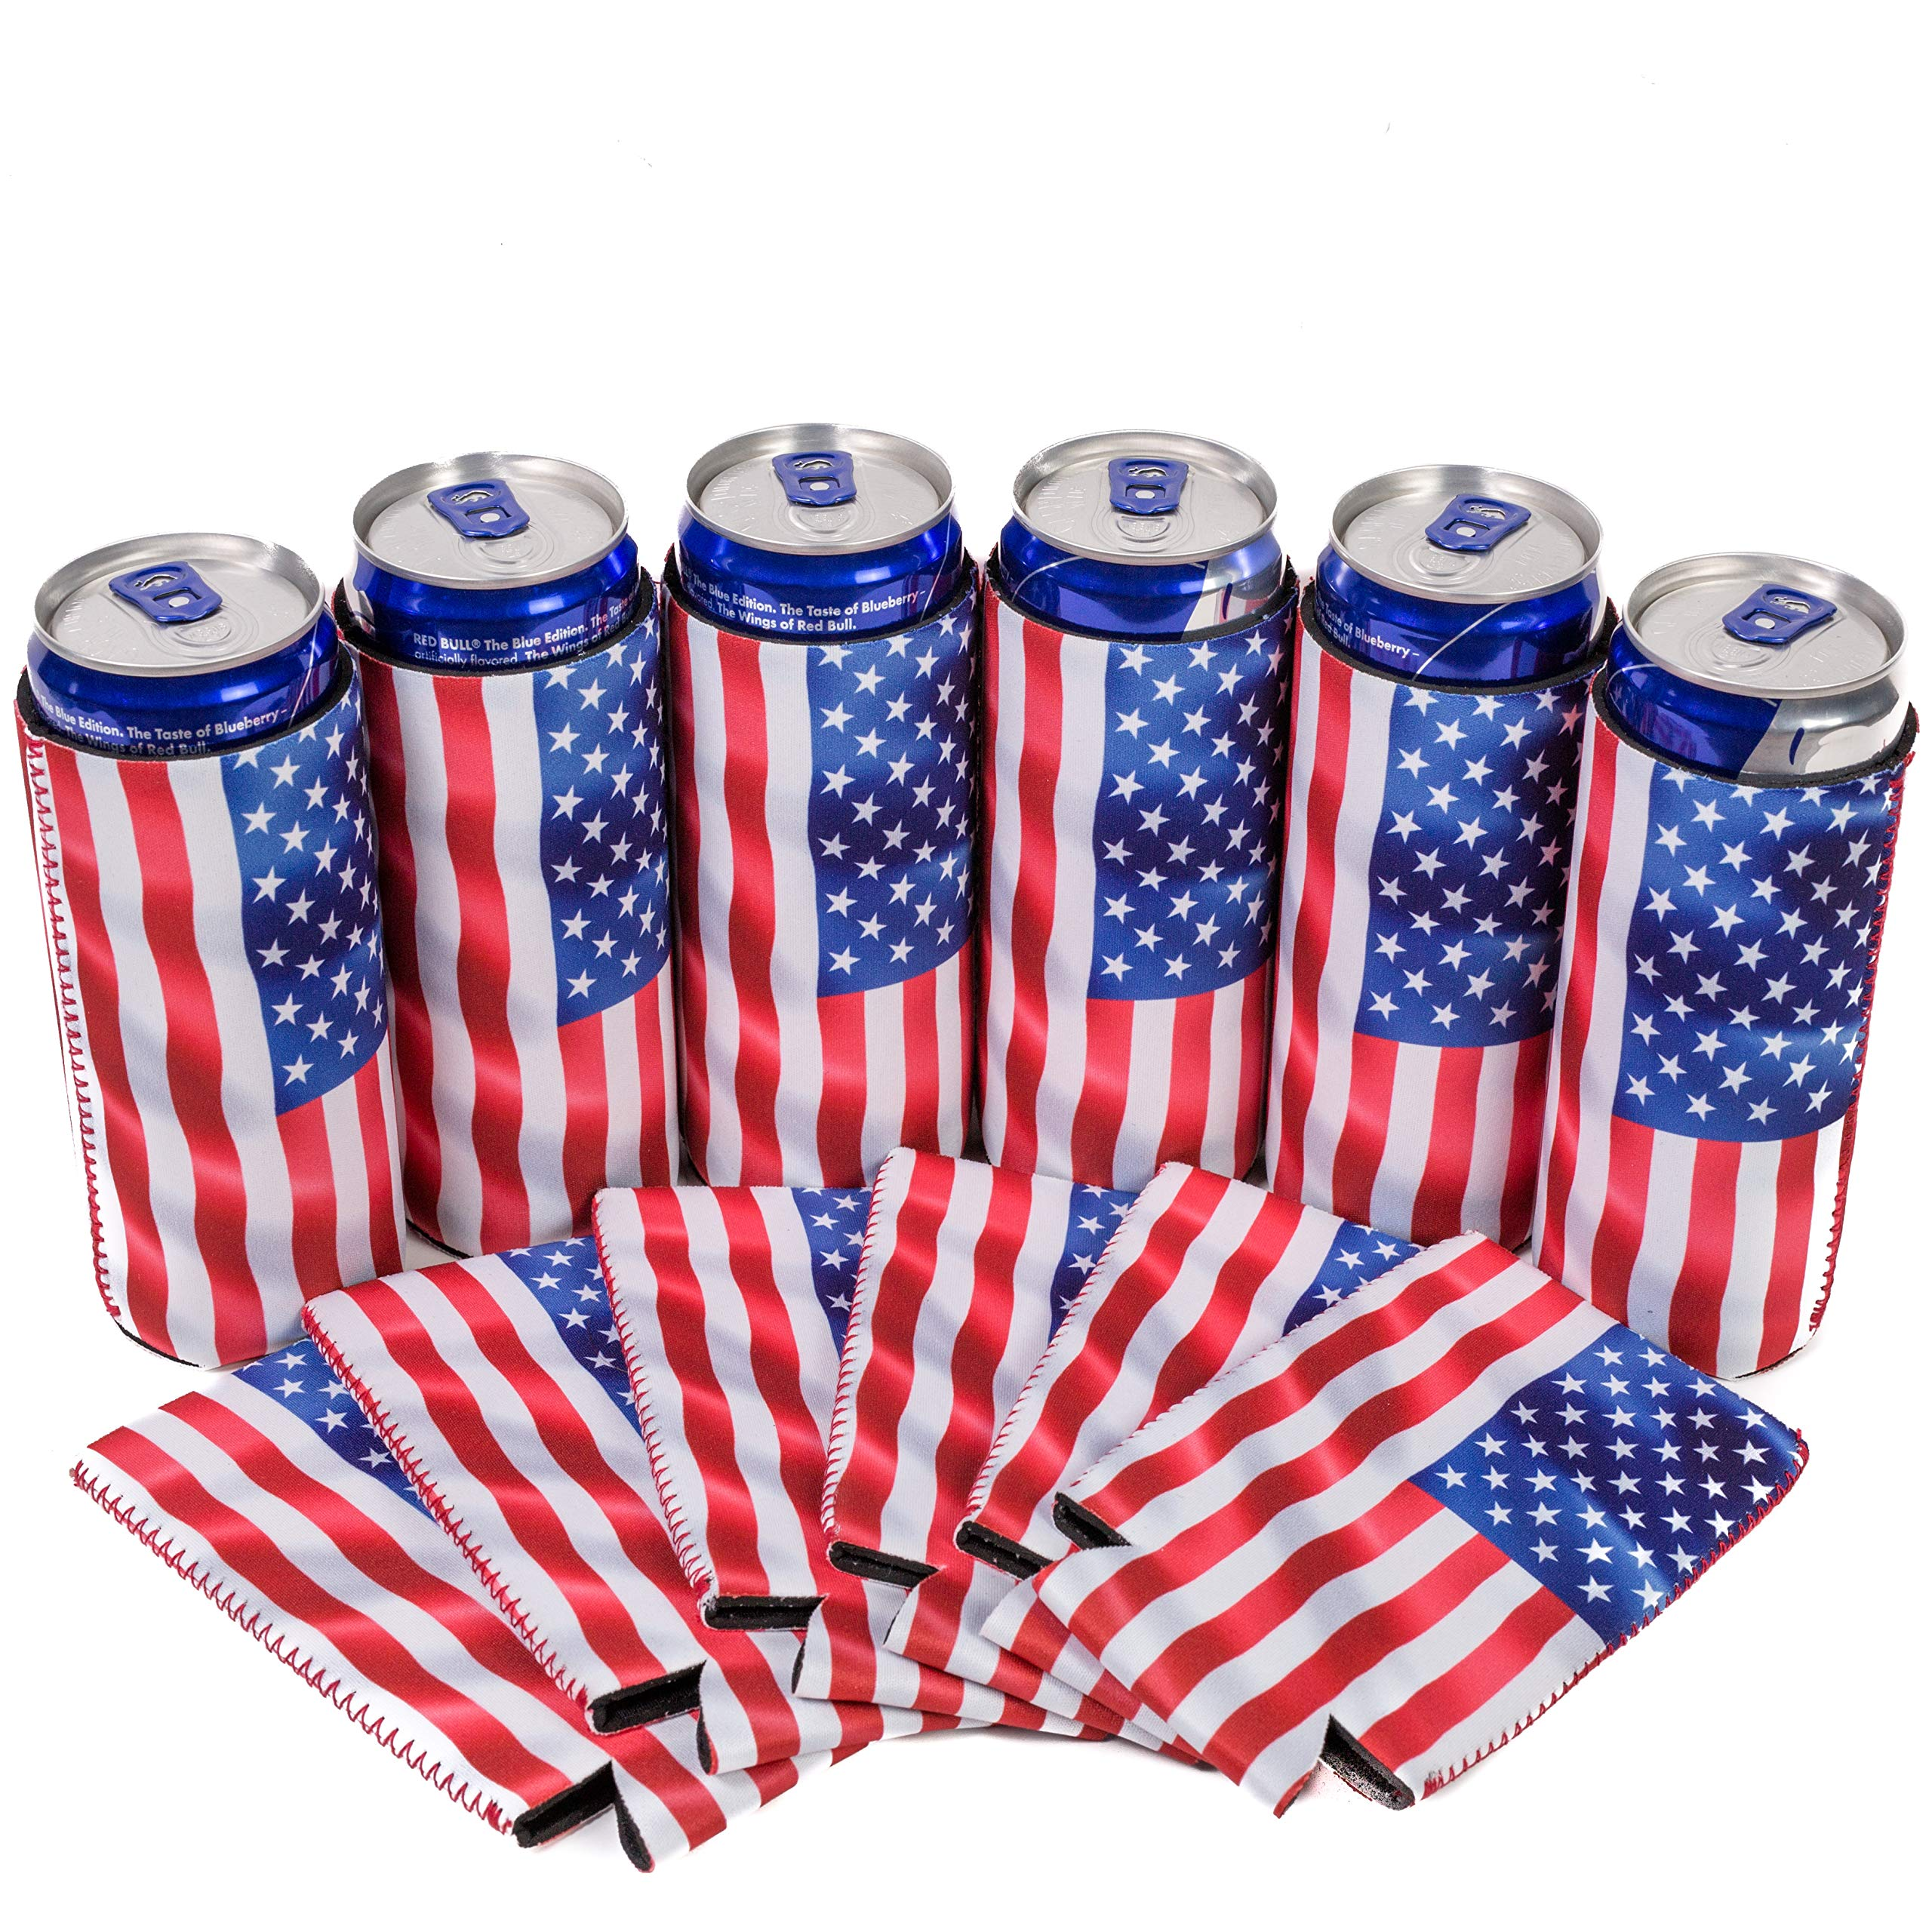 QualityPerfection 6 Slim American US Flag in The Wind - Neoprene Can Sleeves,Slim Beer Can Coolers,Energy Can Sleeves Great 4 Holidays,Sport/Business Events,Parties,Independence Day,BBQ,4th Of July